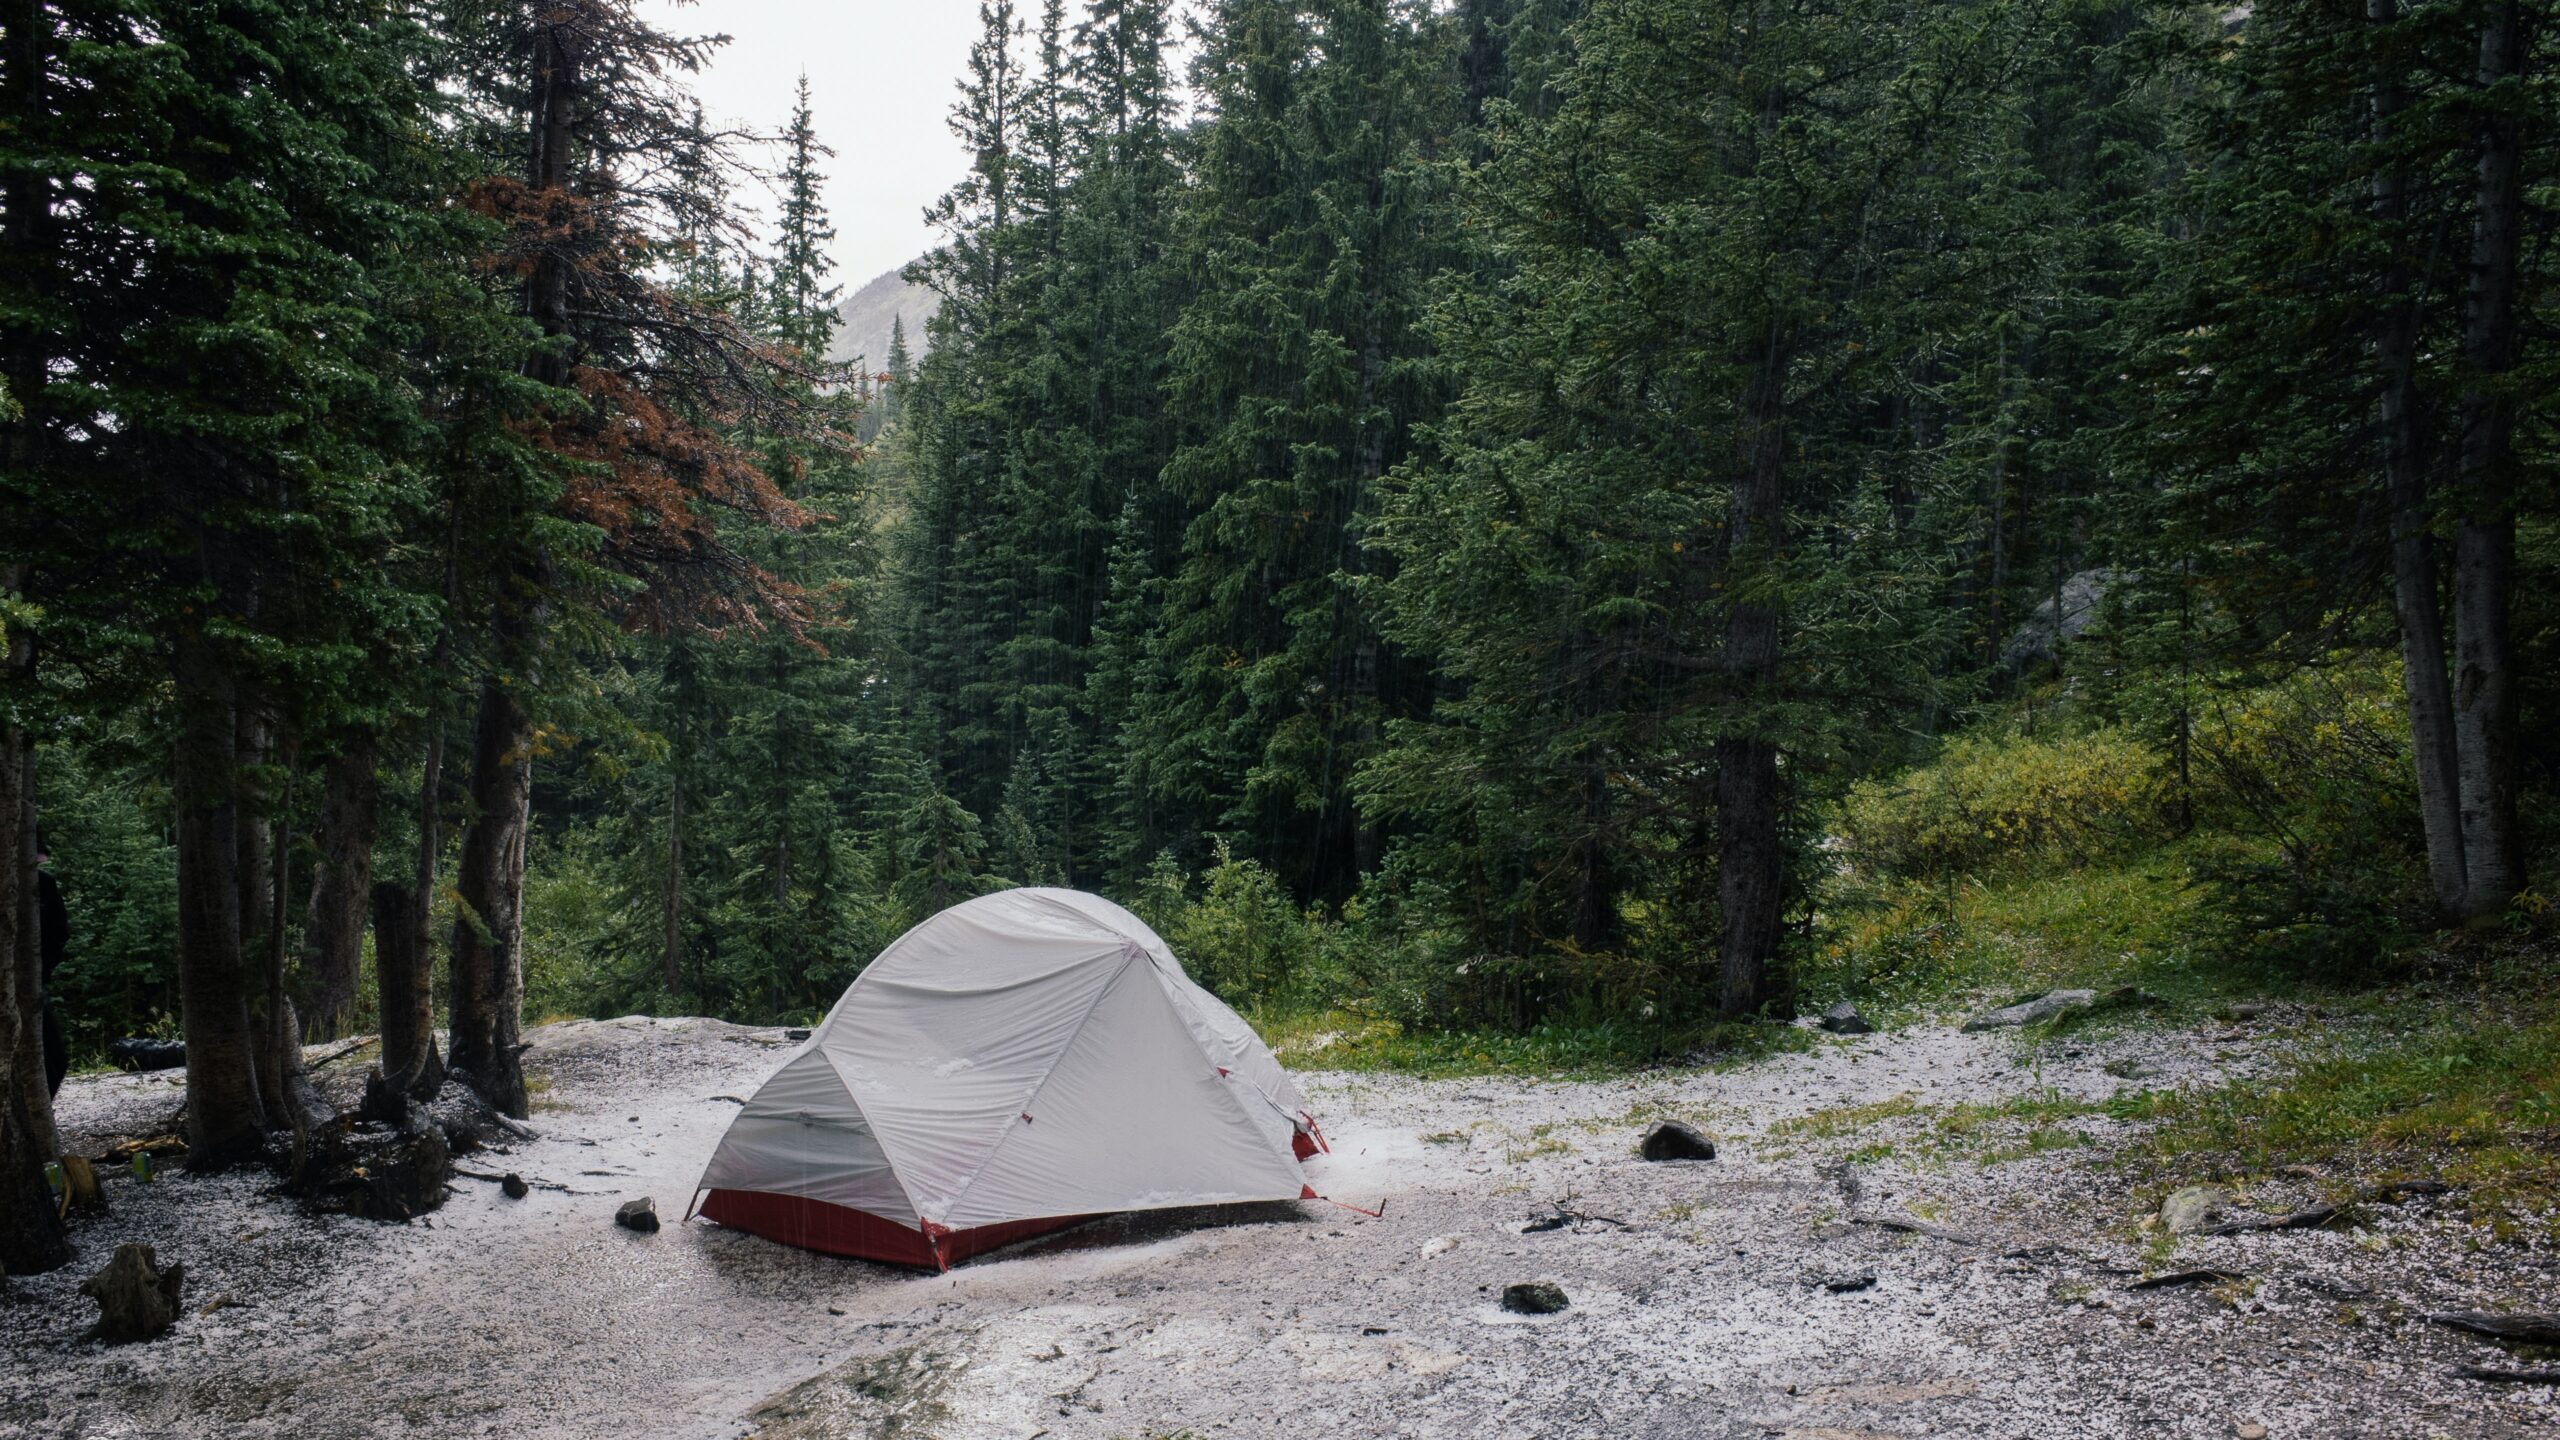 How to Keep Tent Dry in Rain